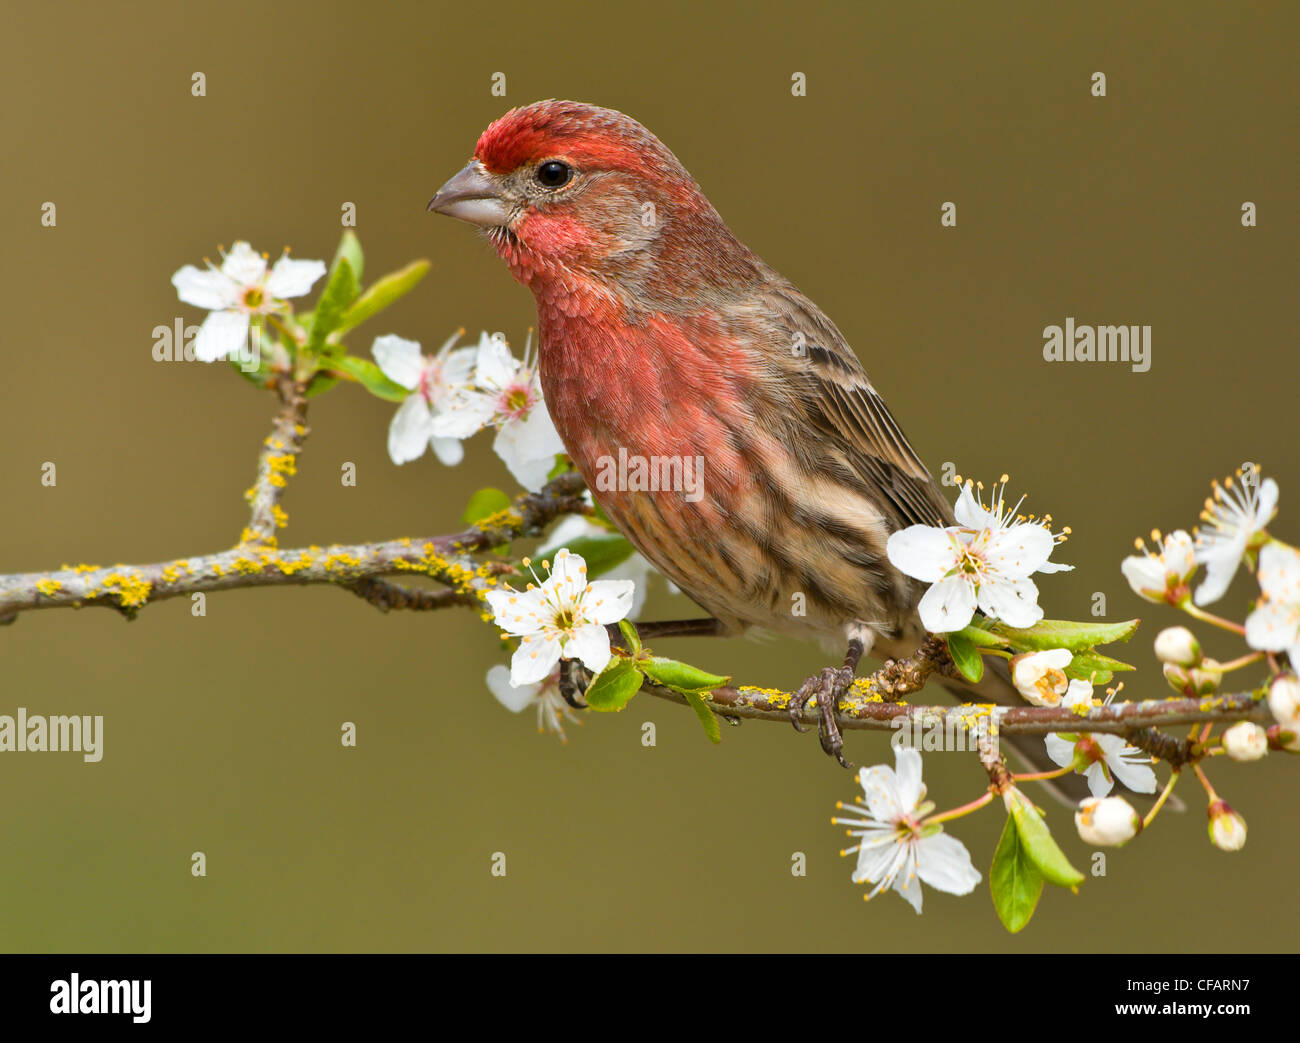 Male House finch (Carpodacus mexicanus) on plum blossoms at Victoria, Vancouver Island, British Columbia, Canada - Stock Image